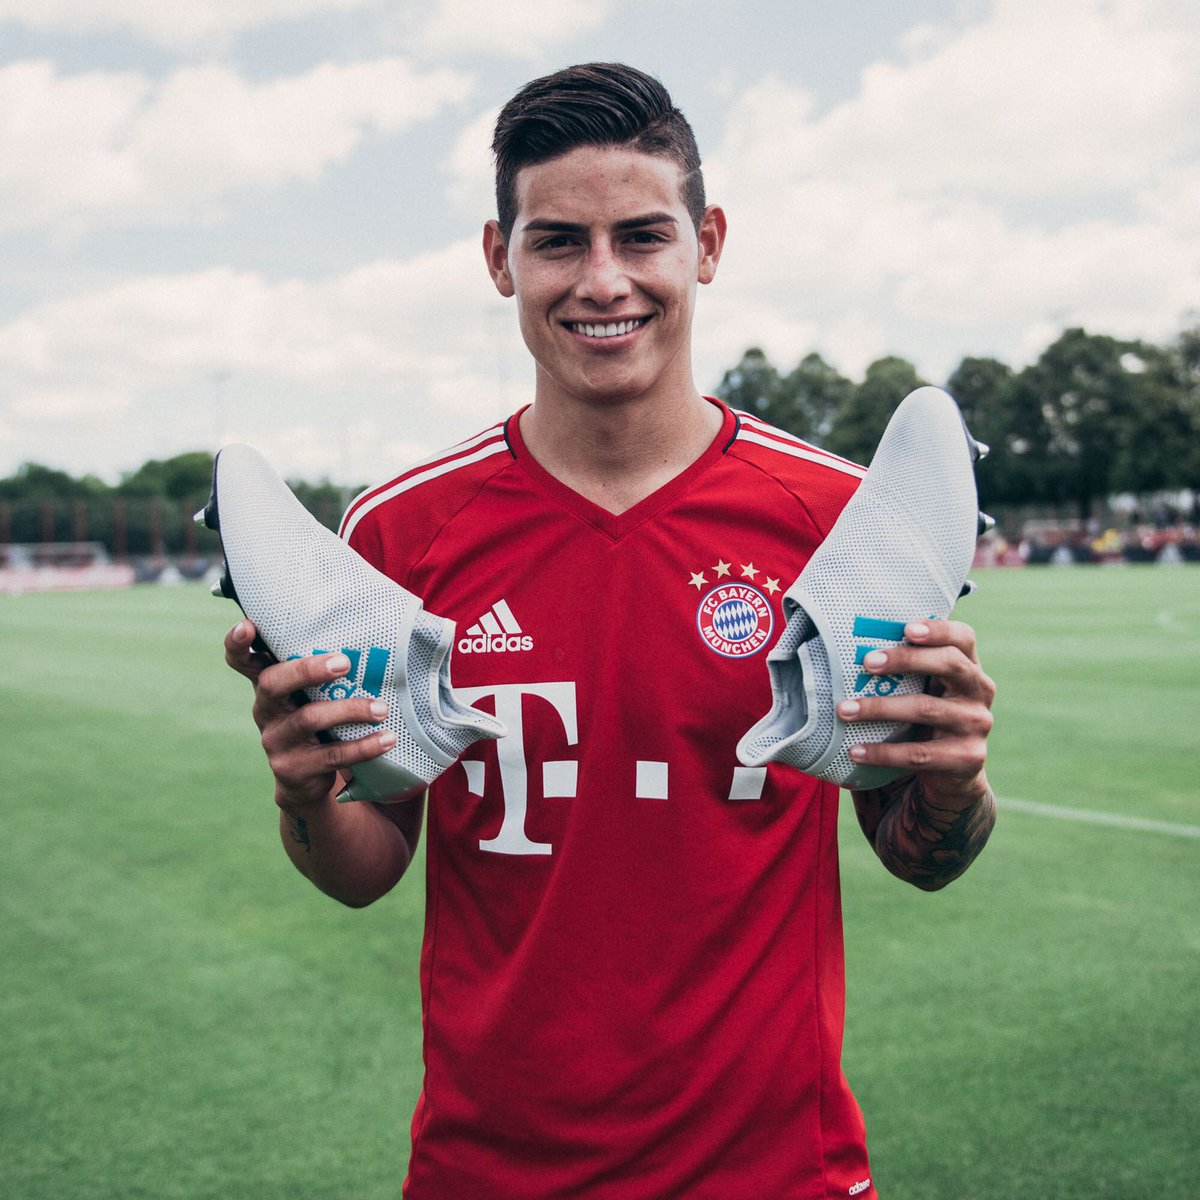 Siempre con @adidasfootball 👟👌🏼 Creating my @fcbayern story with adidas ⚡ #HereToCreate #X17